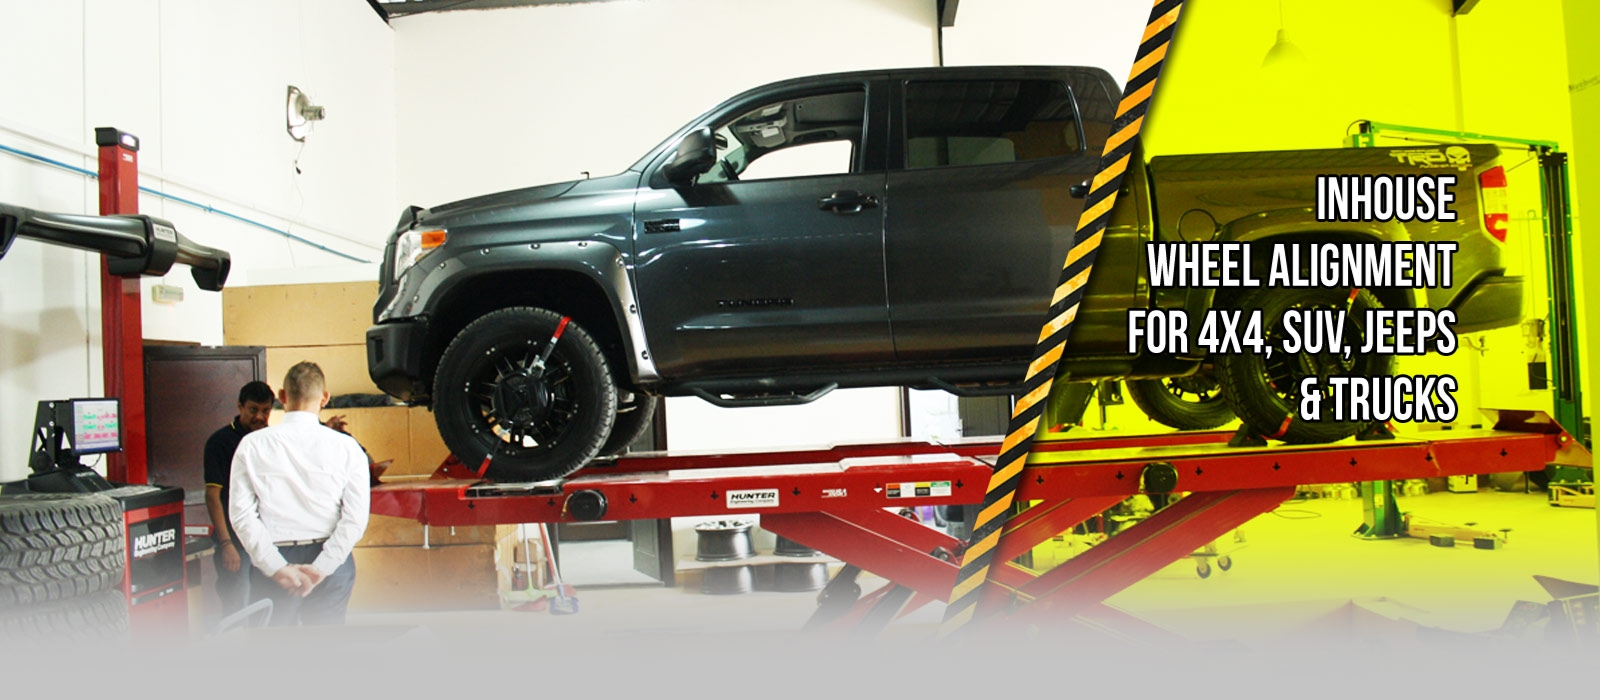 http://www.theoffroadcompany.com/cms/resources/contentfiles/pageBanners/Header-Banner-WheelAlignment.jpg